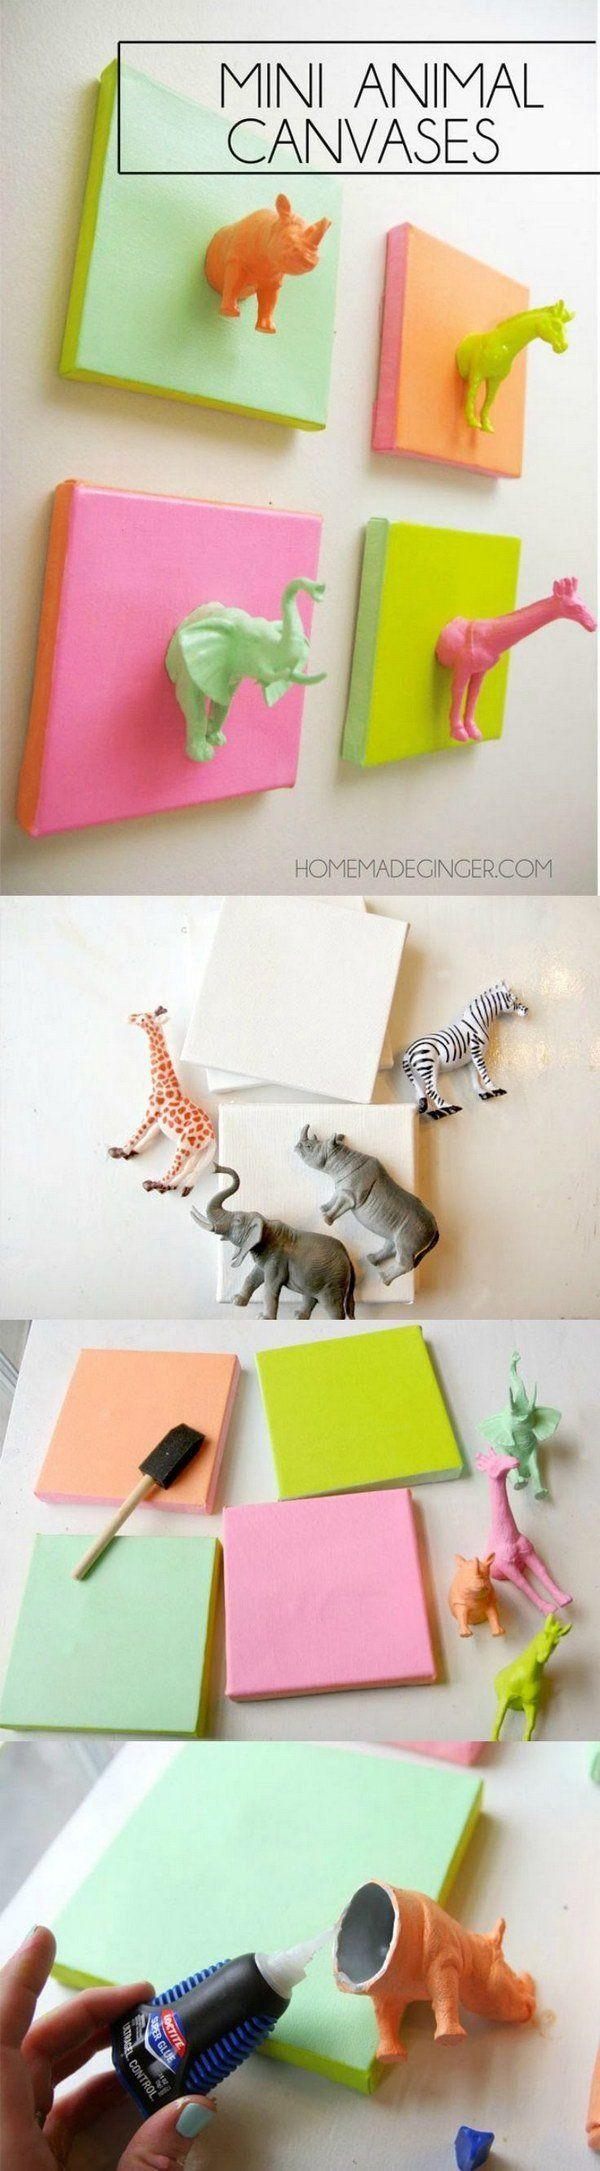 25+ Best Colorful Wall Art Ideas On Pinterest | Animal Art For For Vibrant Wall Art (View 12 of 20)